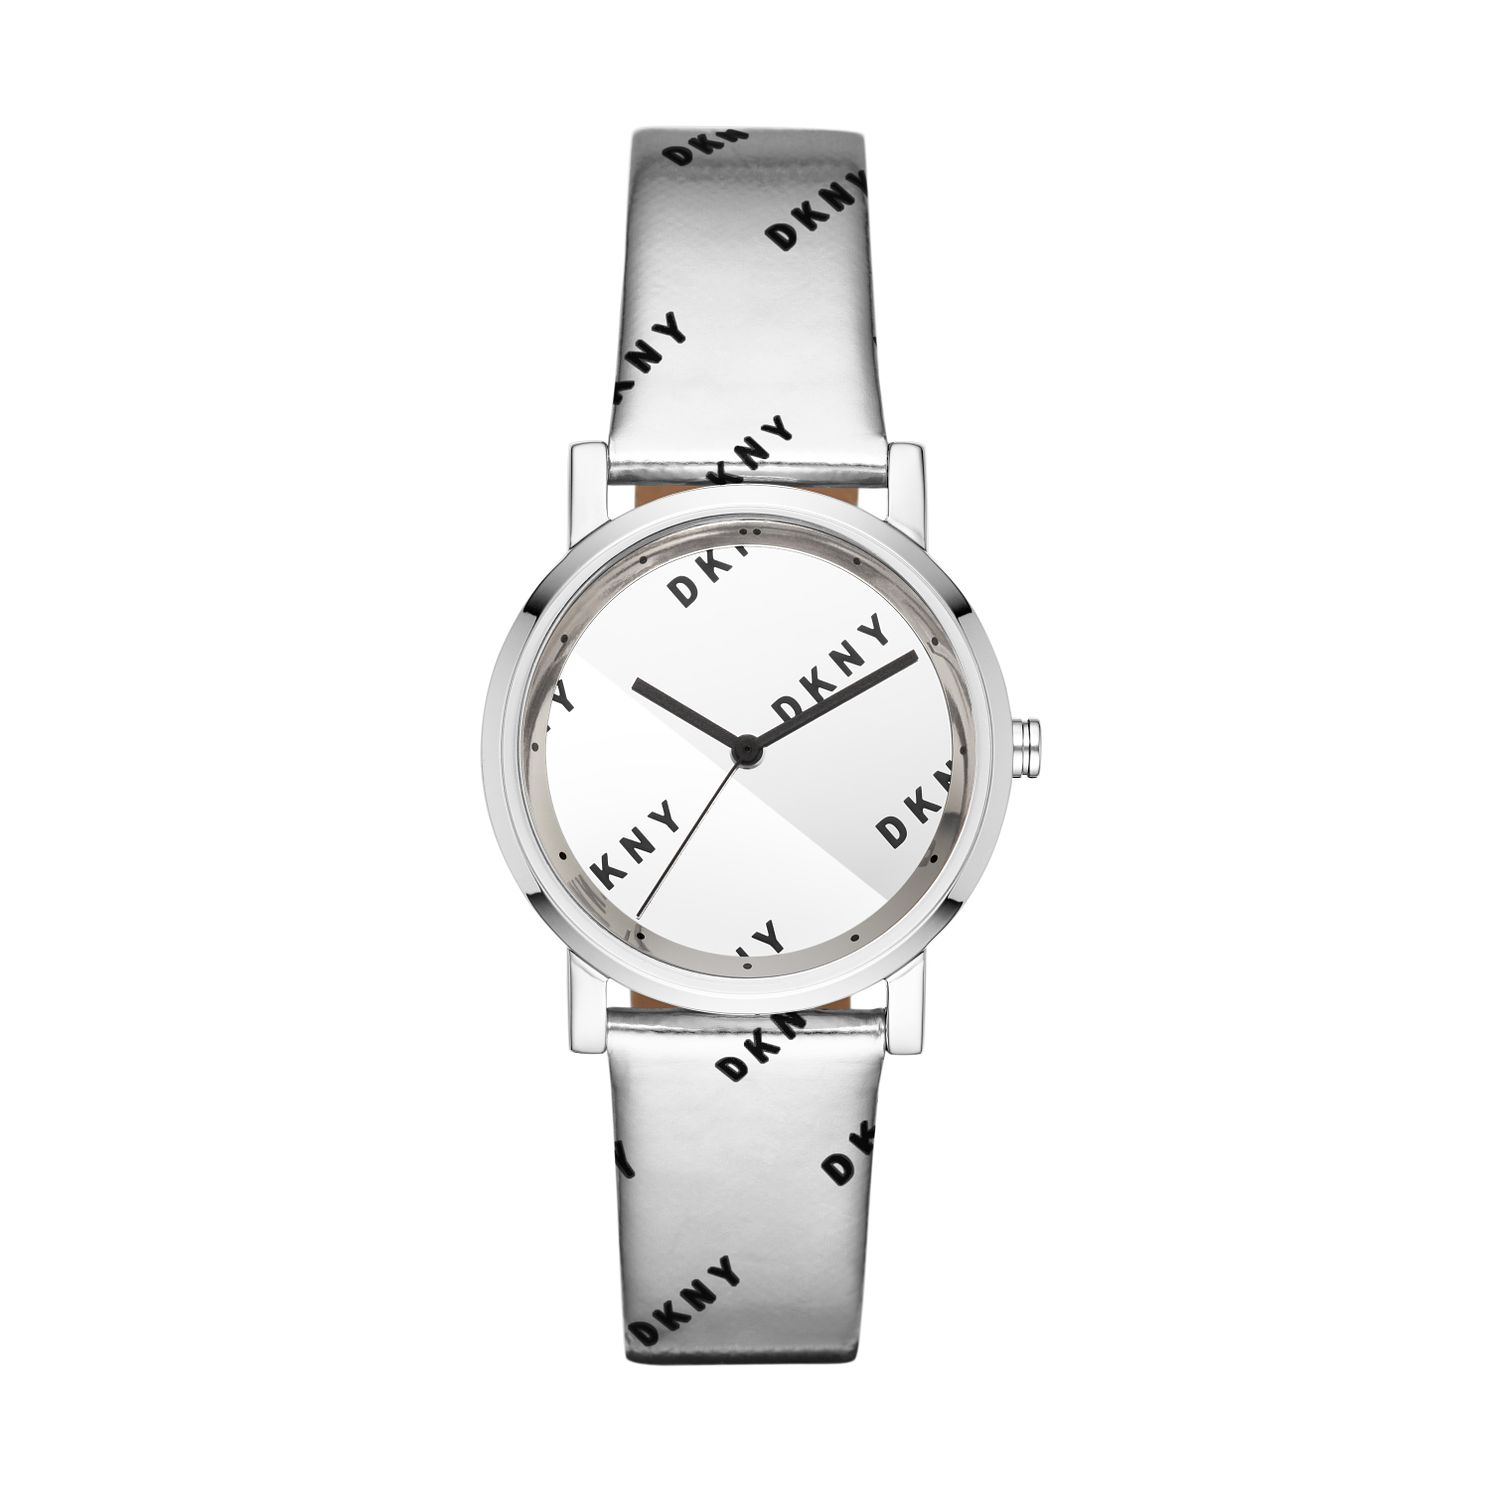 DKNY Soho Ladies' Silver Leather Logo Strap Watch - Product number 3178978